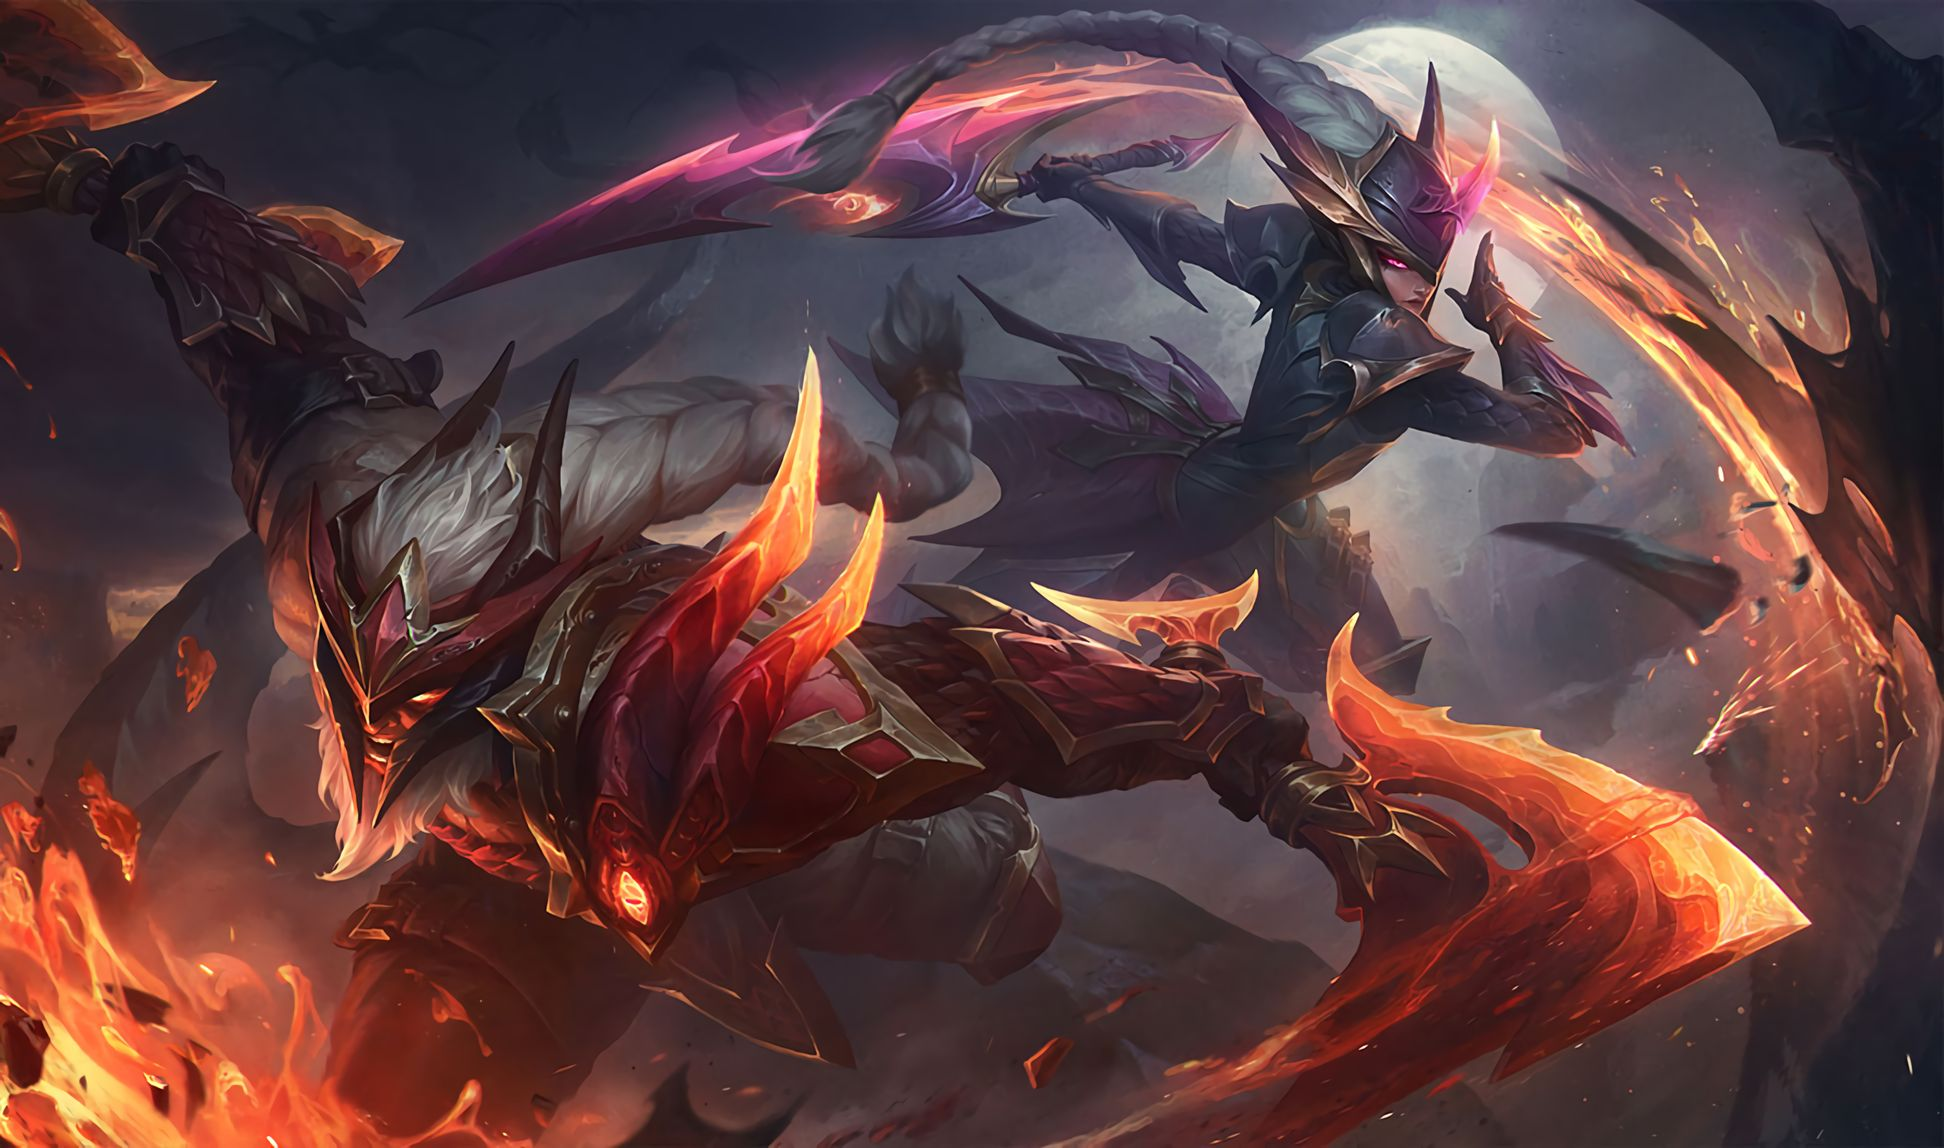 Wallpapers Dragonslayer Diana And Olaf Skins Artist Riot